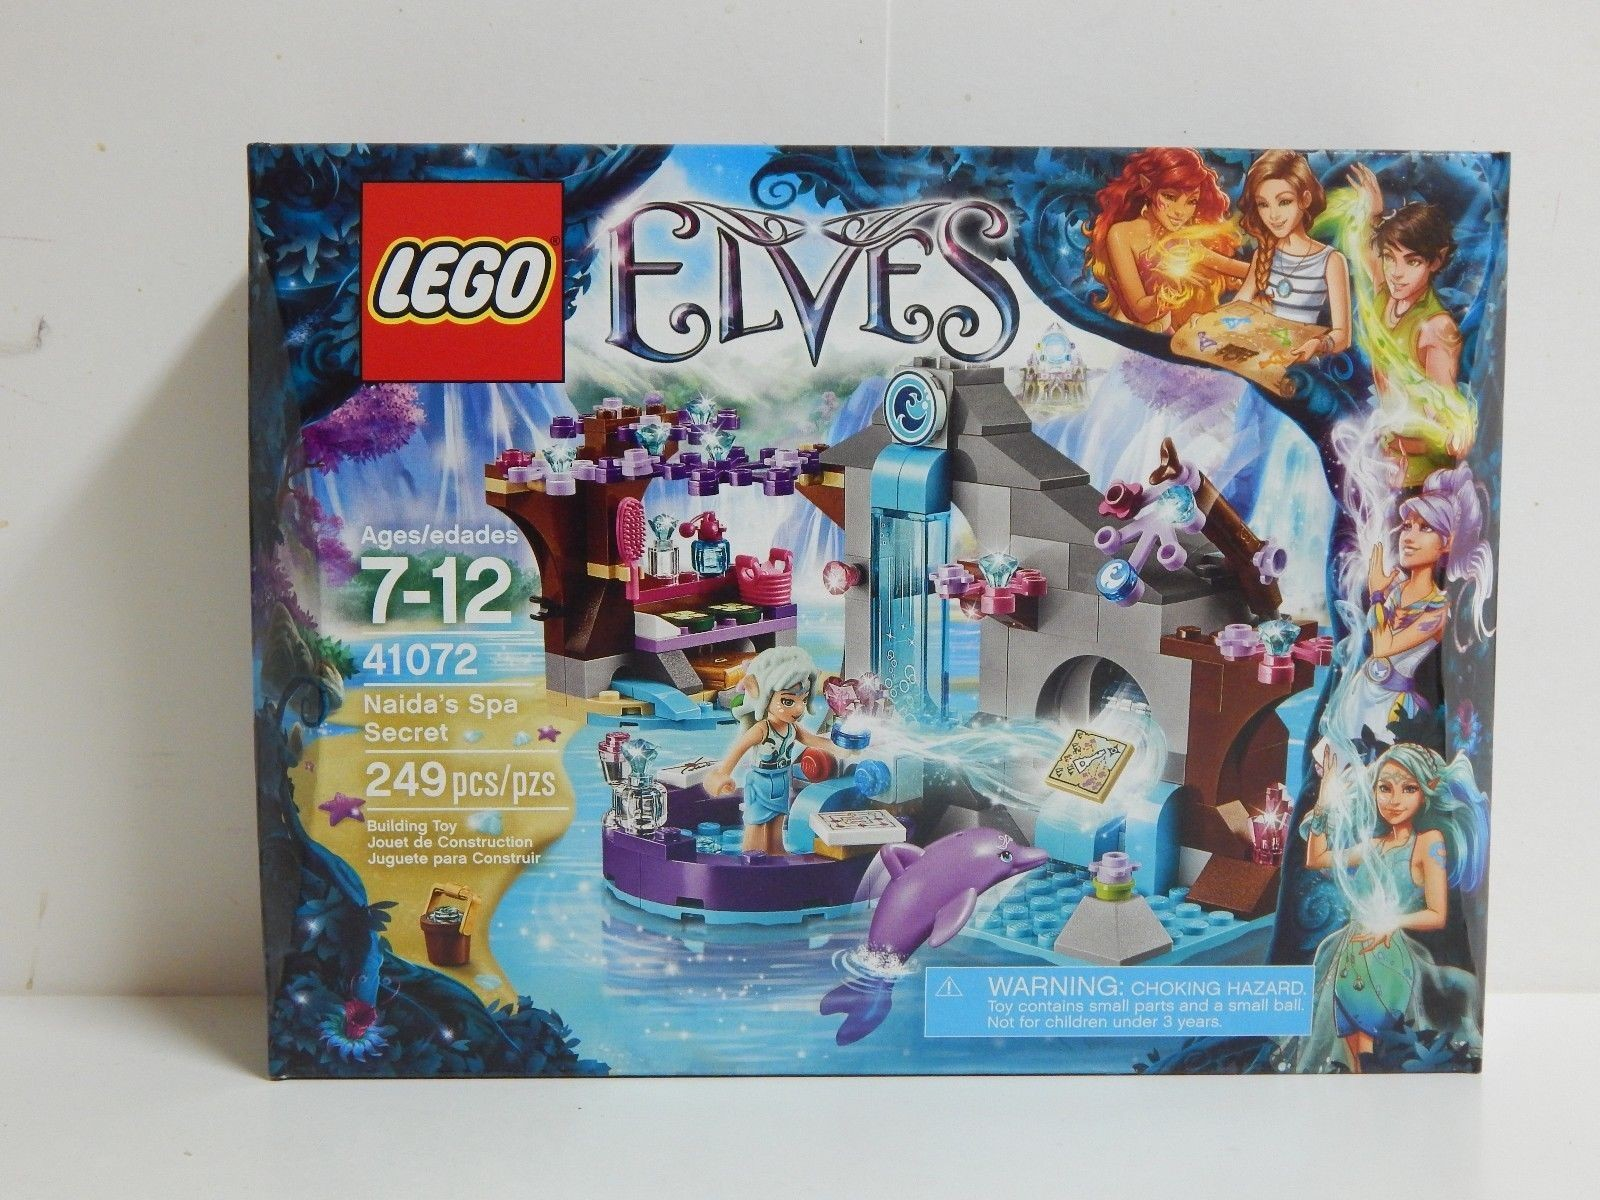 Lego March Calendar Actual Lego Elves Naida S Spa Secret Factory Sealed Retired sold Out Of Lego March Calendar Más Recientes Clone Pilot Brickipedia